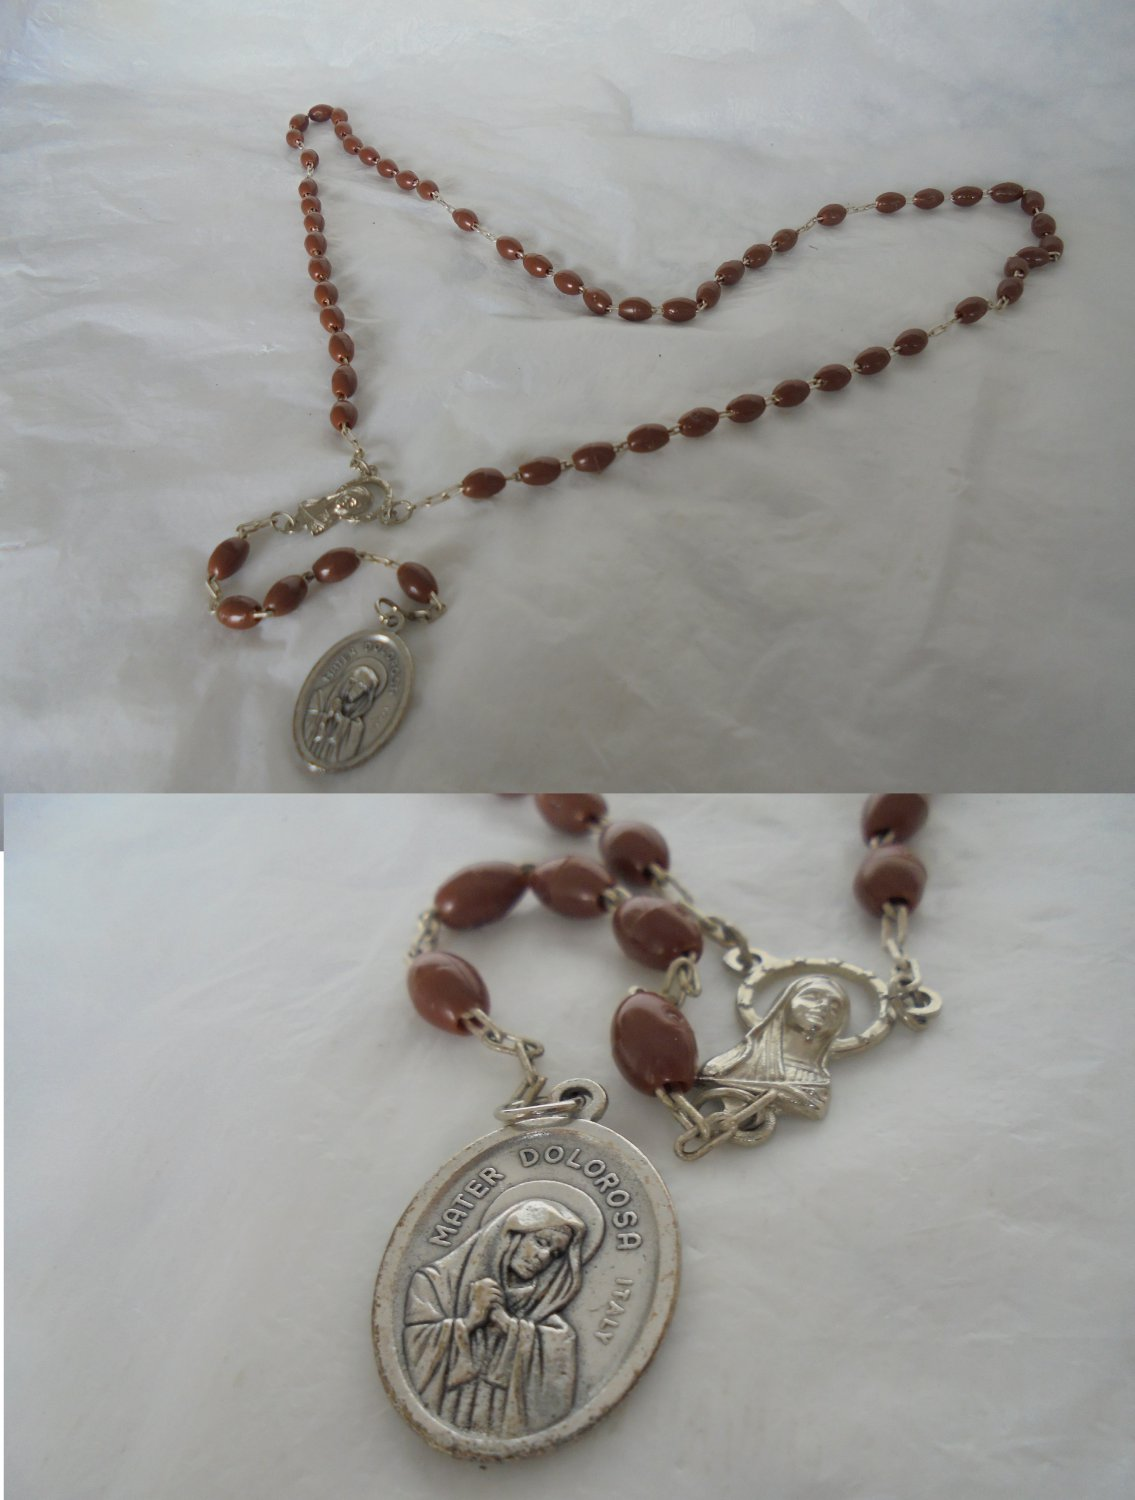 Praying rosary Mater Dolorosa Our Lady of Sorrows Made in USA Original